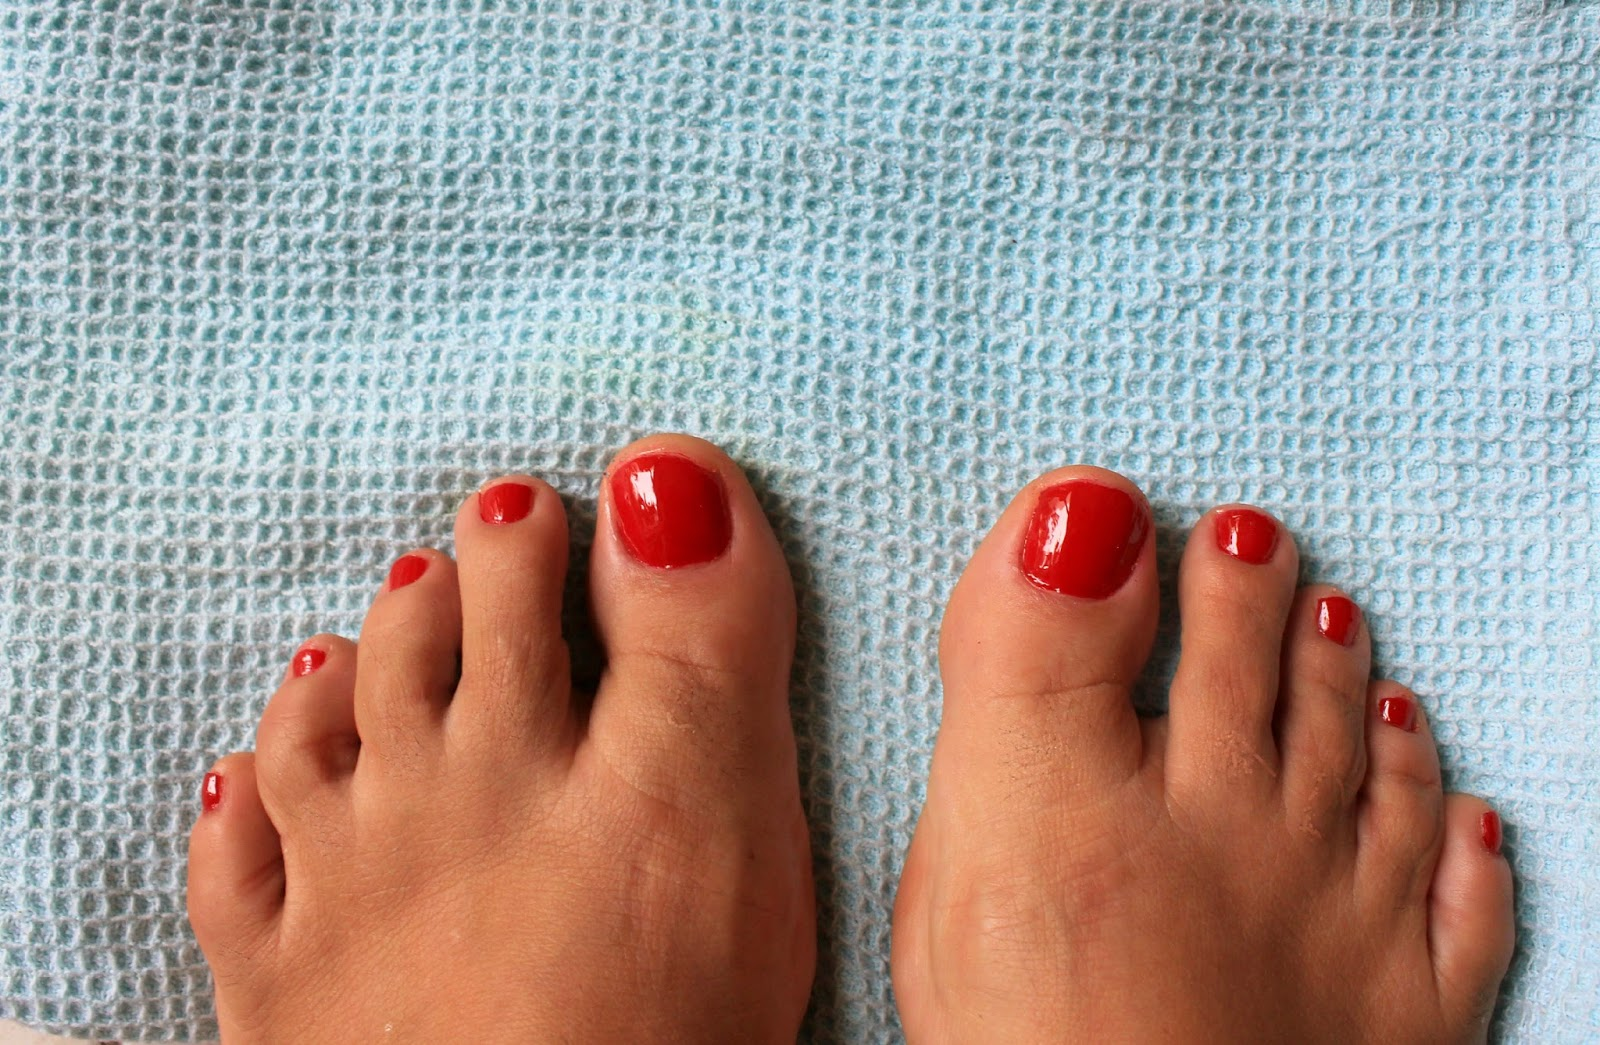 Easy At-Home Pedicure #RespectUrFeet #shop